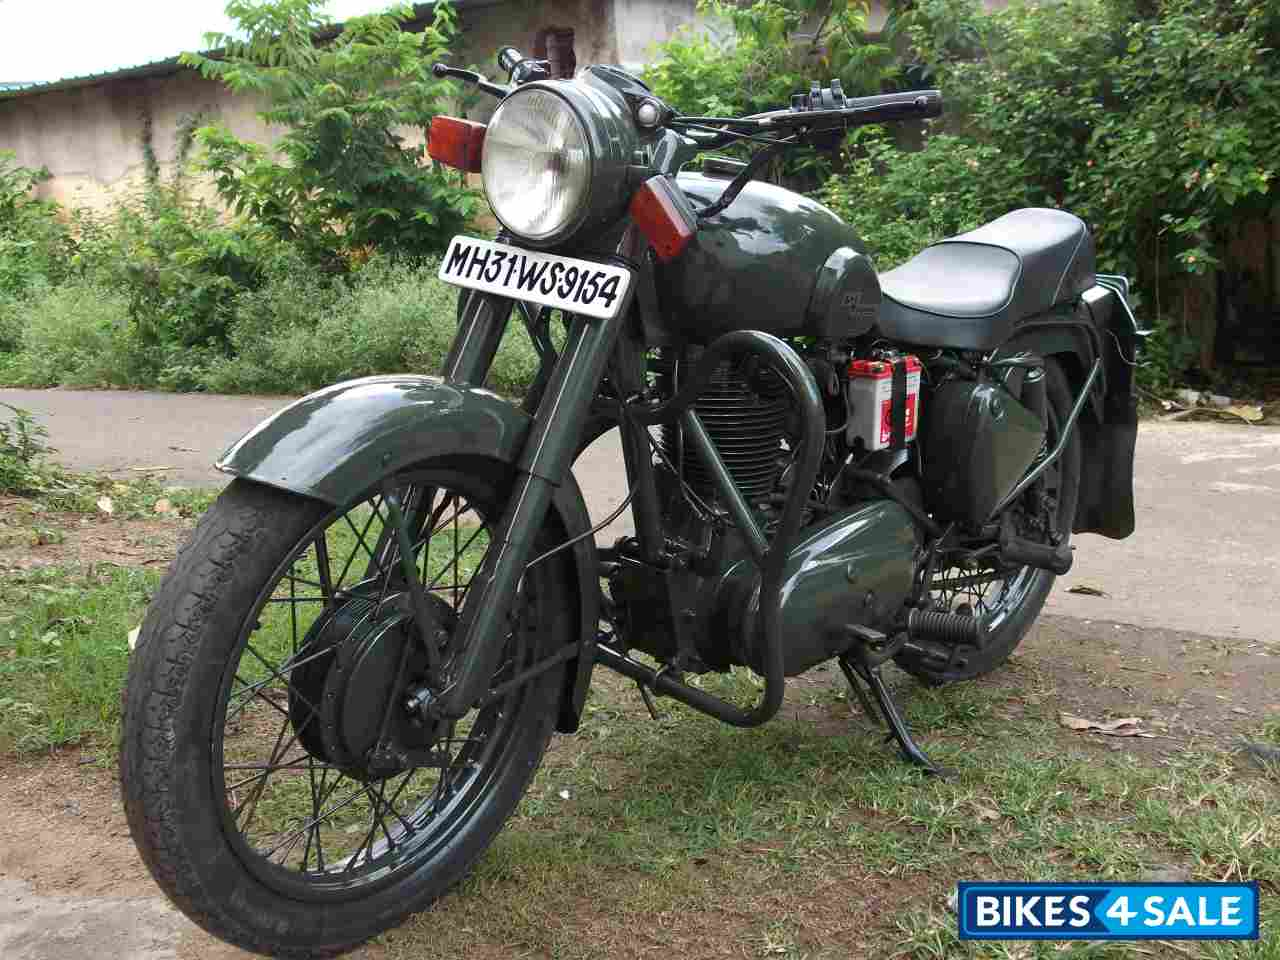 Used 1999 Model Royal Enfield Bullet Standard 350 For Sale In Nagpur Id 60873 Classic Battle Green Colour Bikes4sale